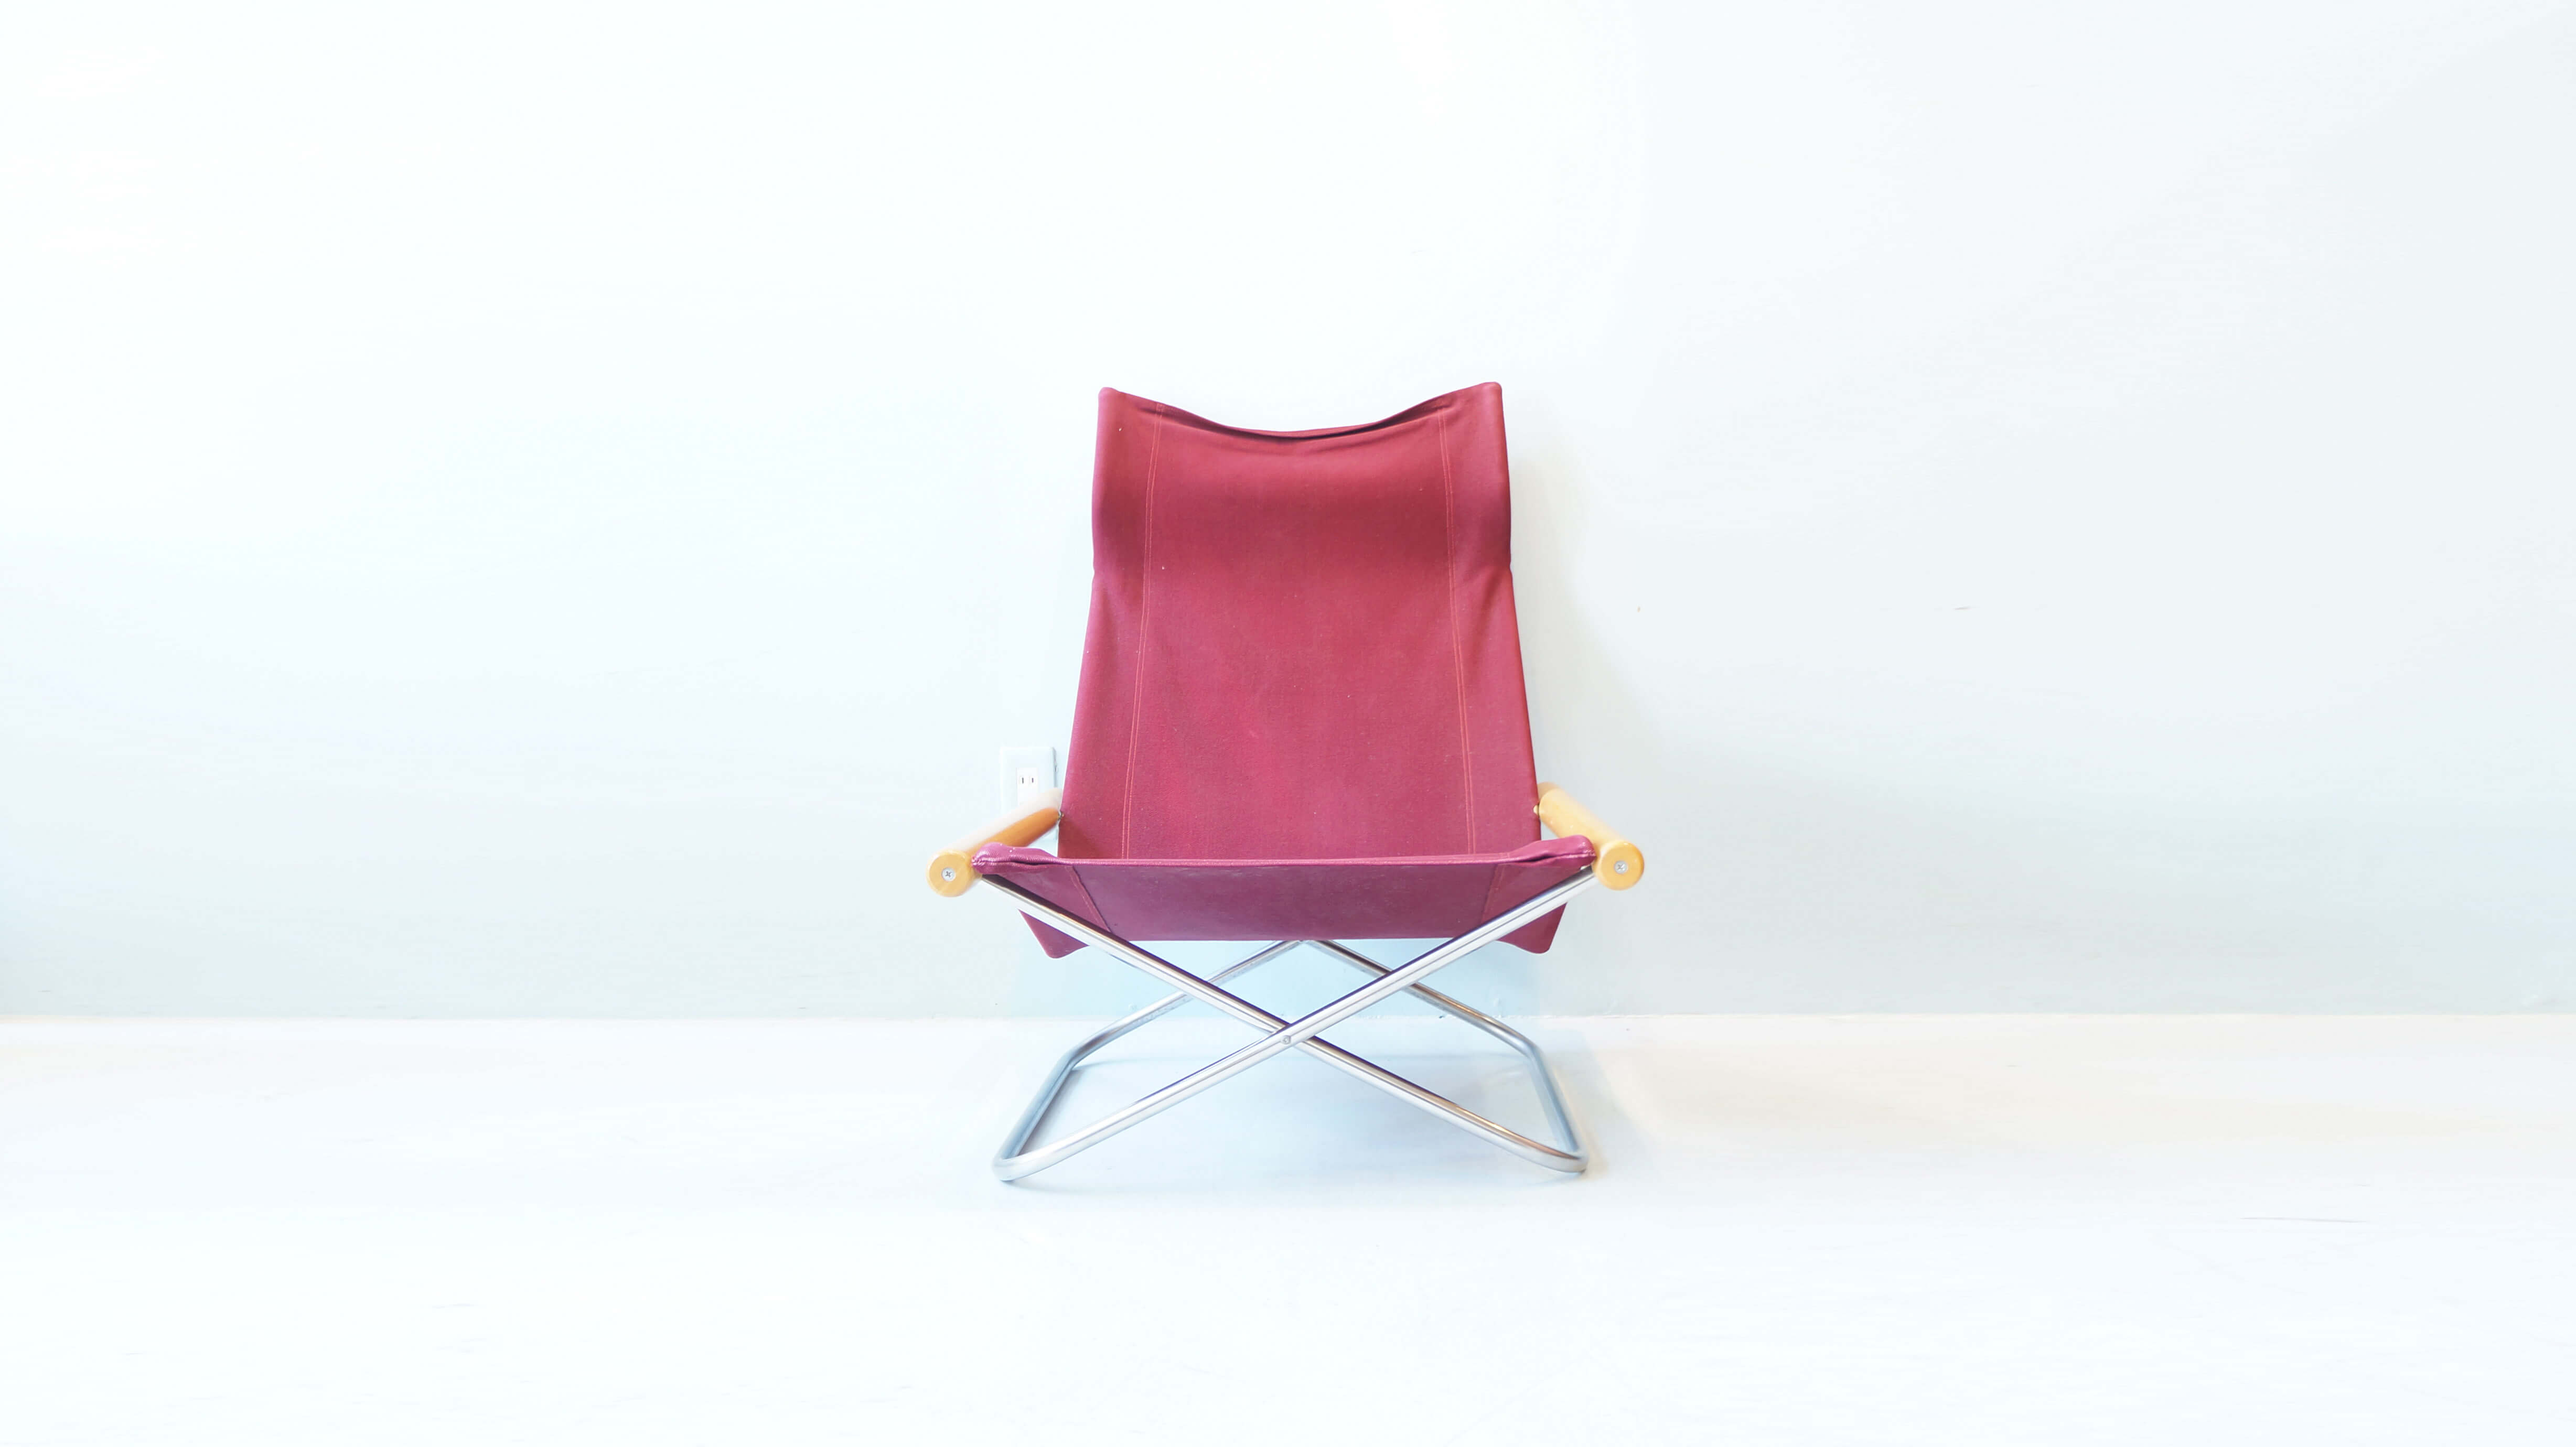 NY chair design by Nii TAKESHI Lounge Chair / ニーチェア 新居猛 デザイン ラウンジチェア